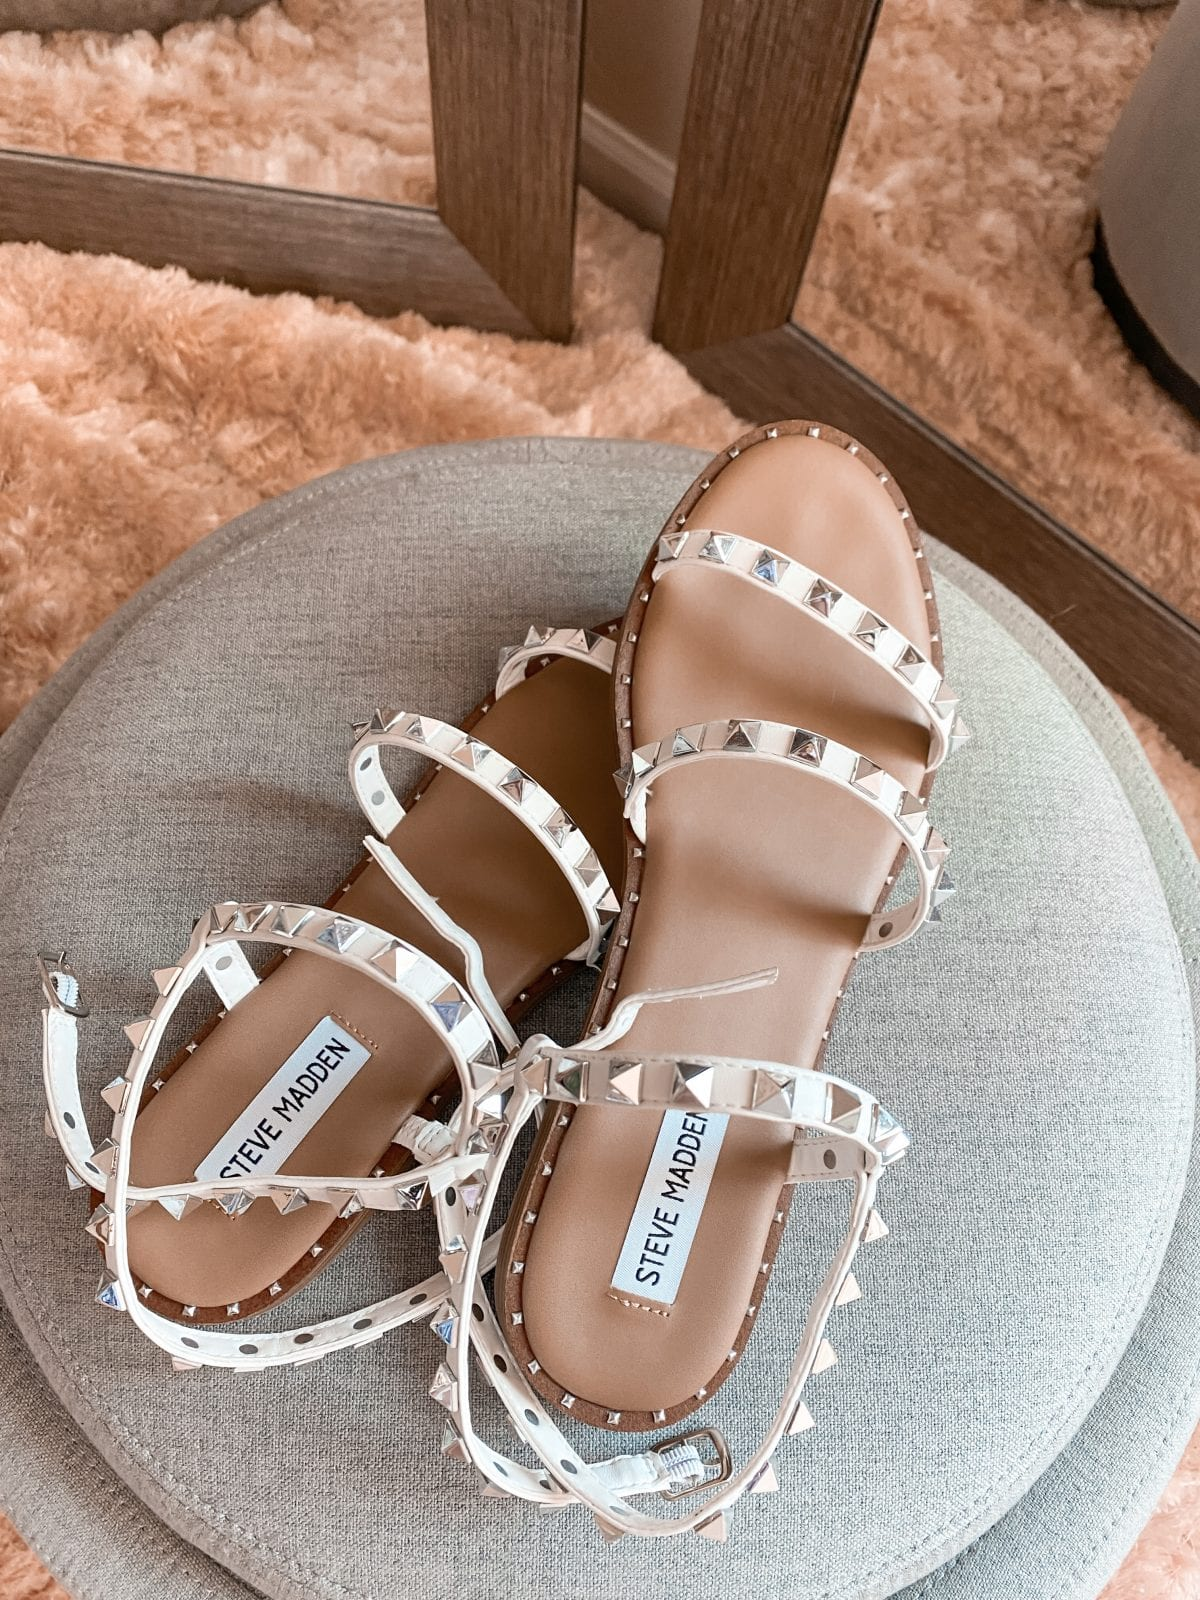 This is a close up of some studded sandals from Steve Madden, worn by Adaleta Avdic.